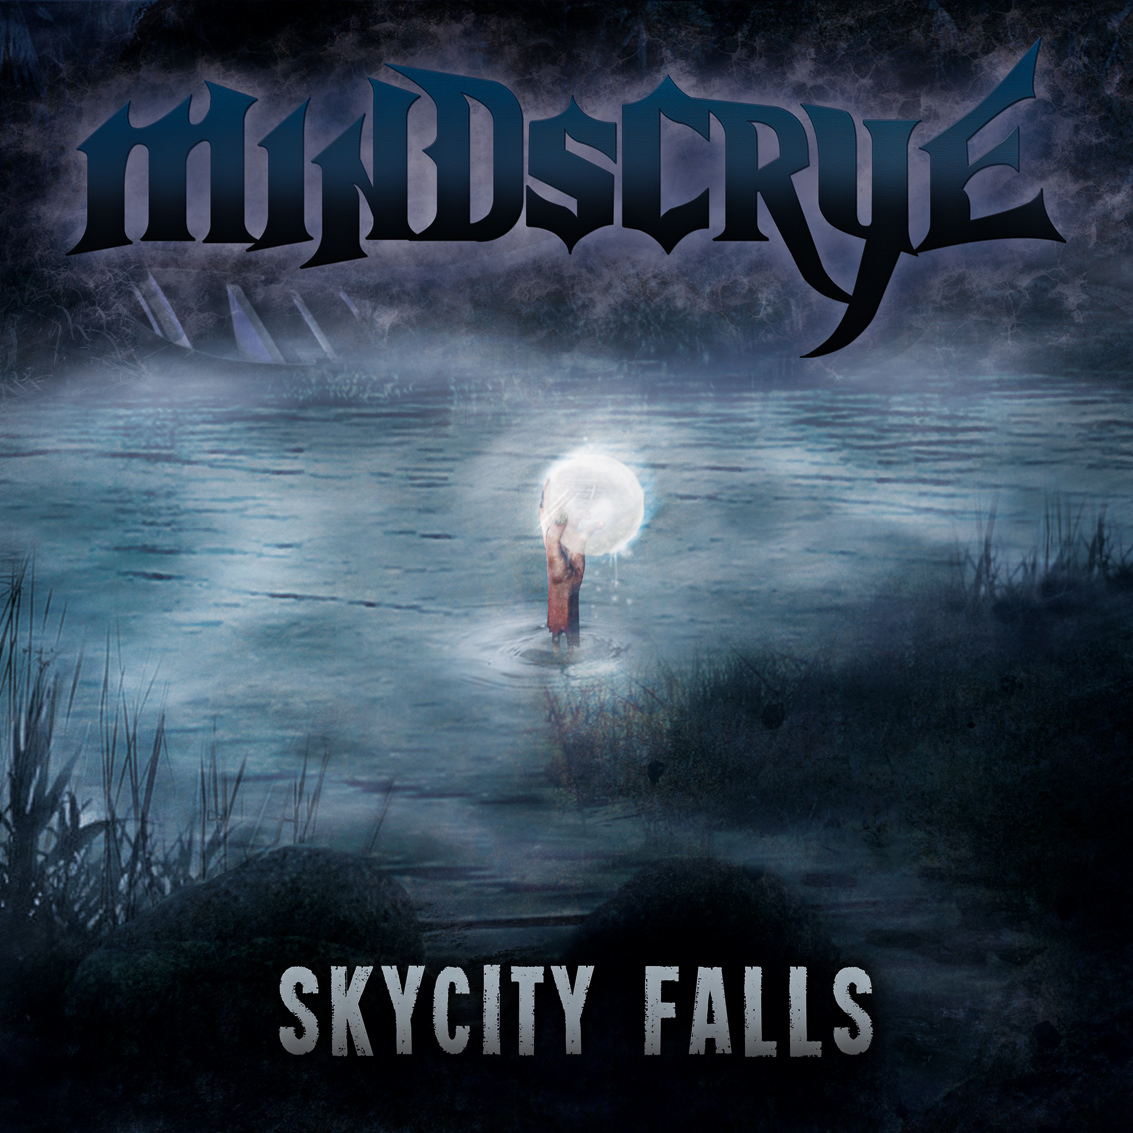 mindscrye-skycity-falls-cover-artwork-metal4hannover-cover-artwork